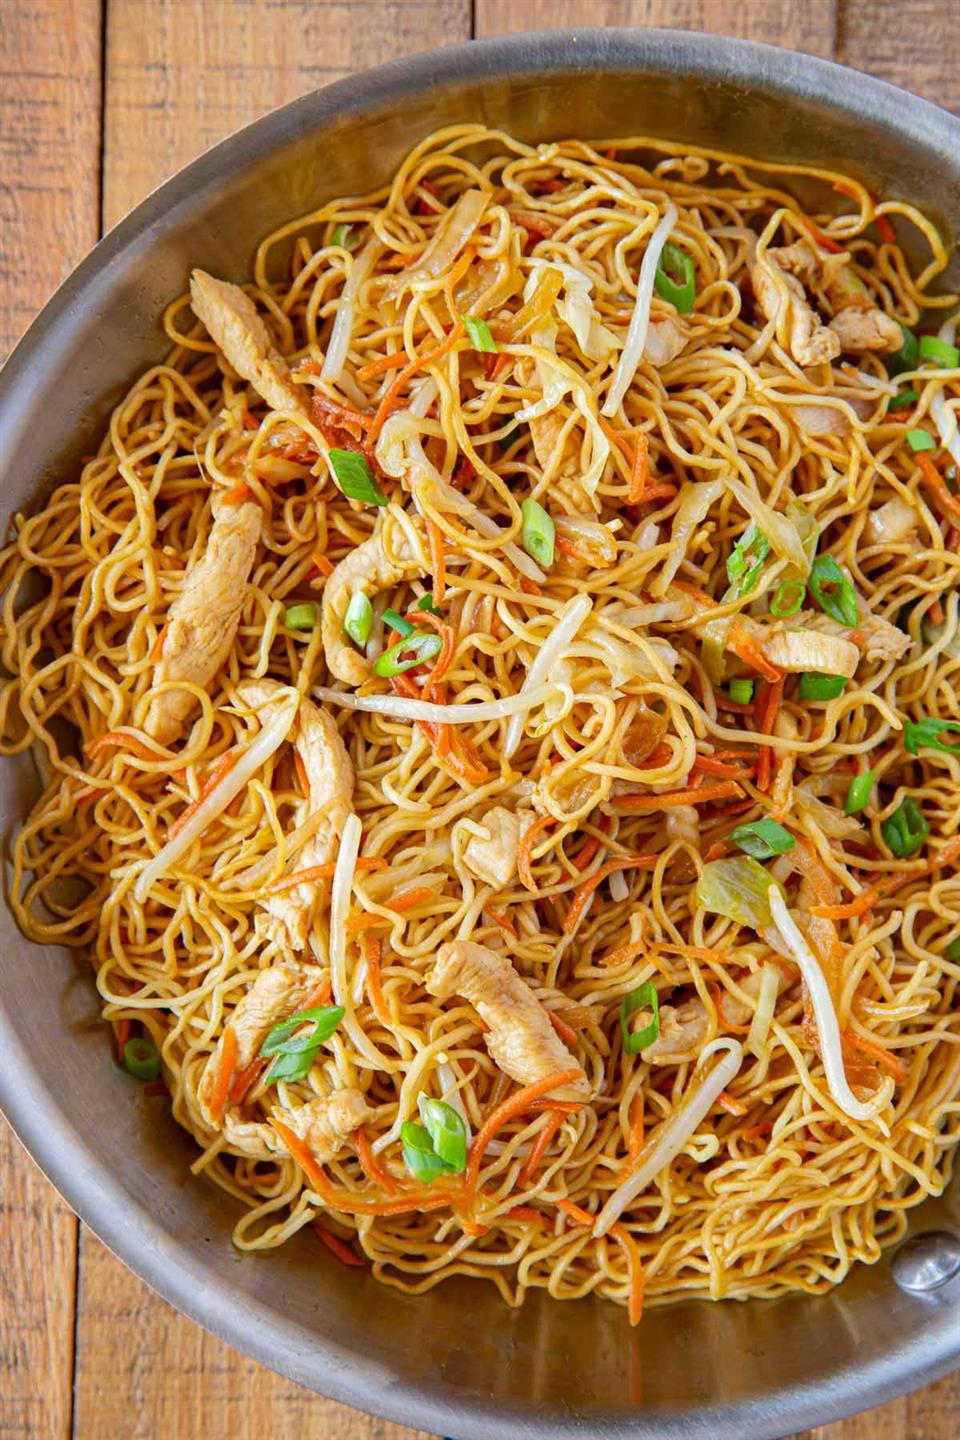 bowl of noodles with vegetables